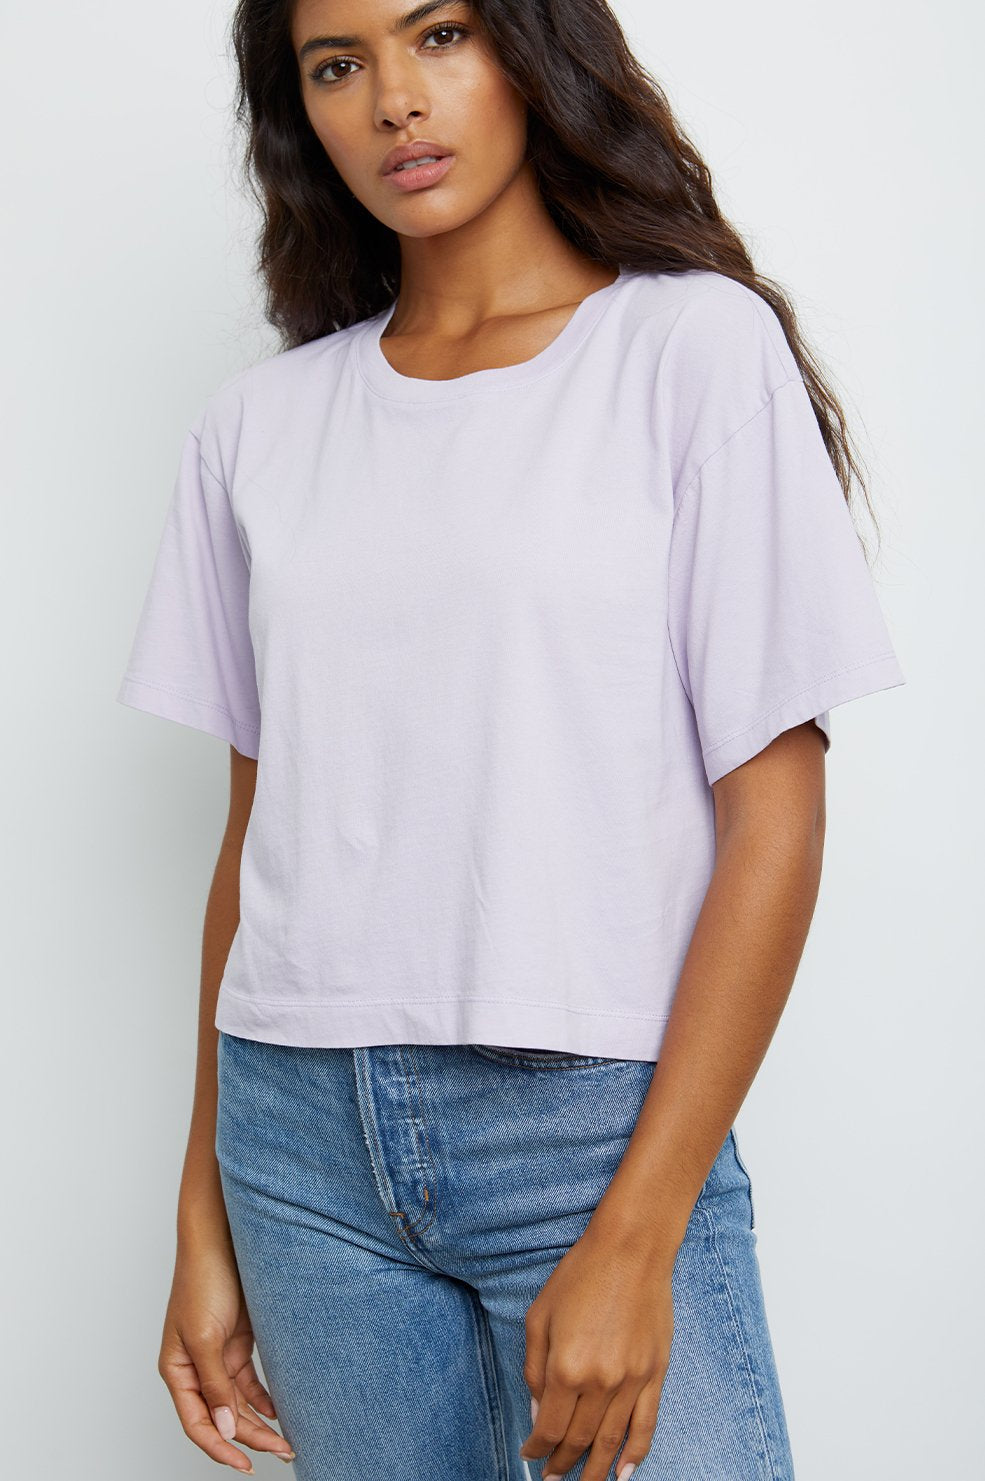 The Boxy Crew in Lavender